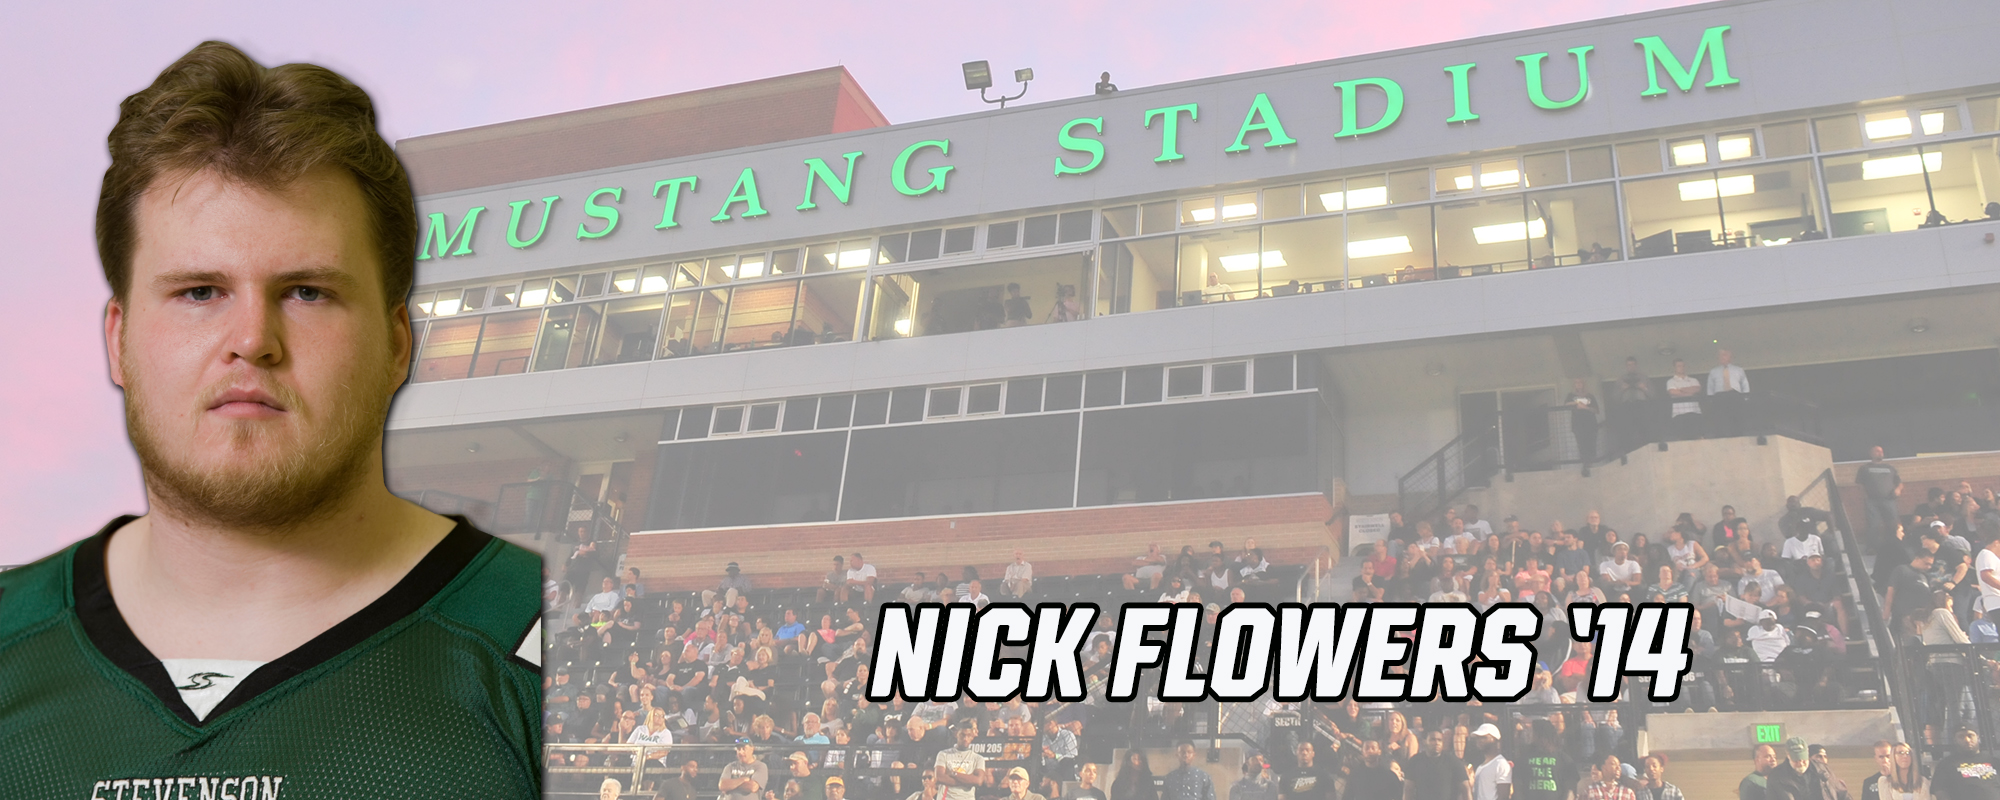 Saturday's Football Game to Honor Nick Flowers '14